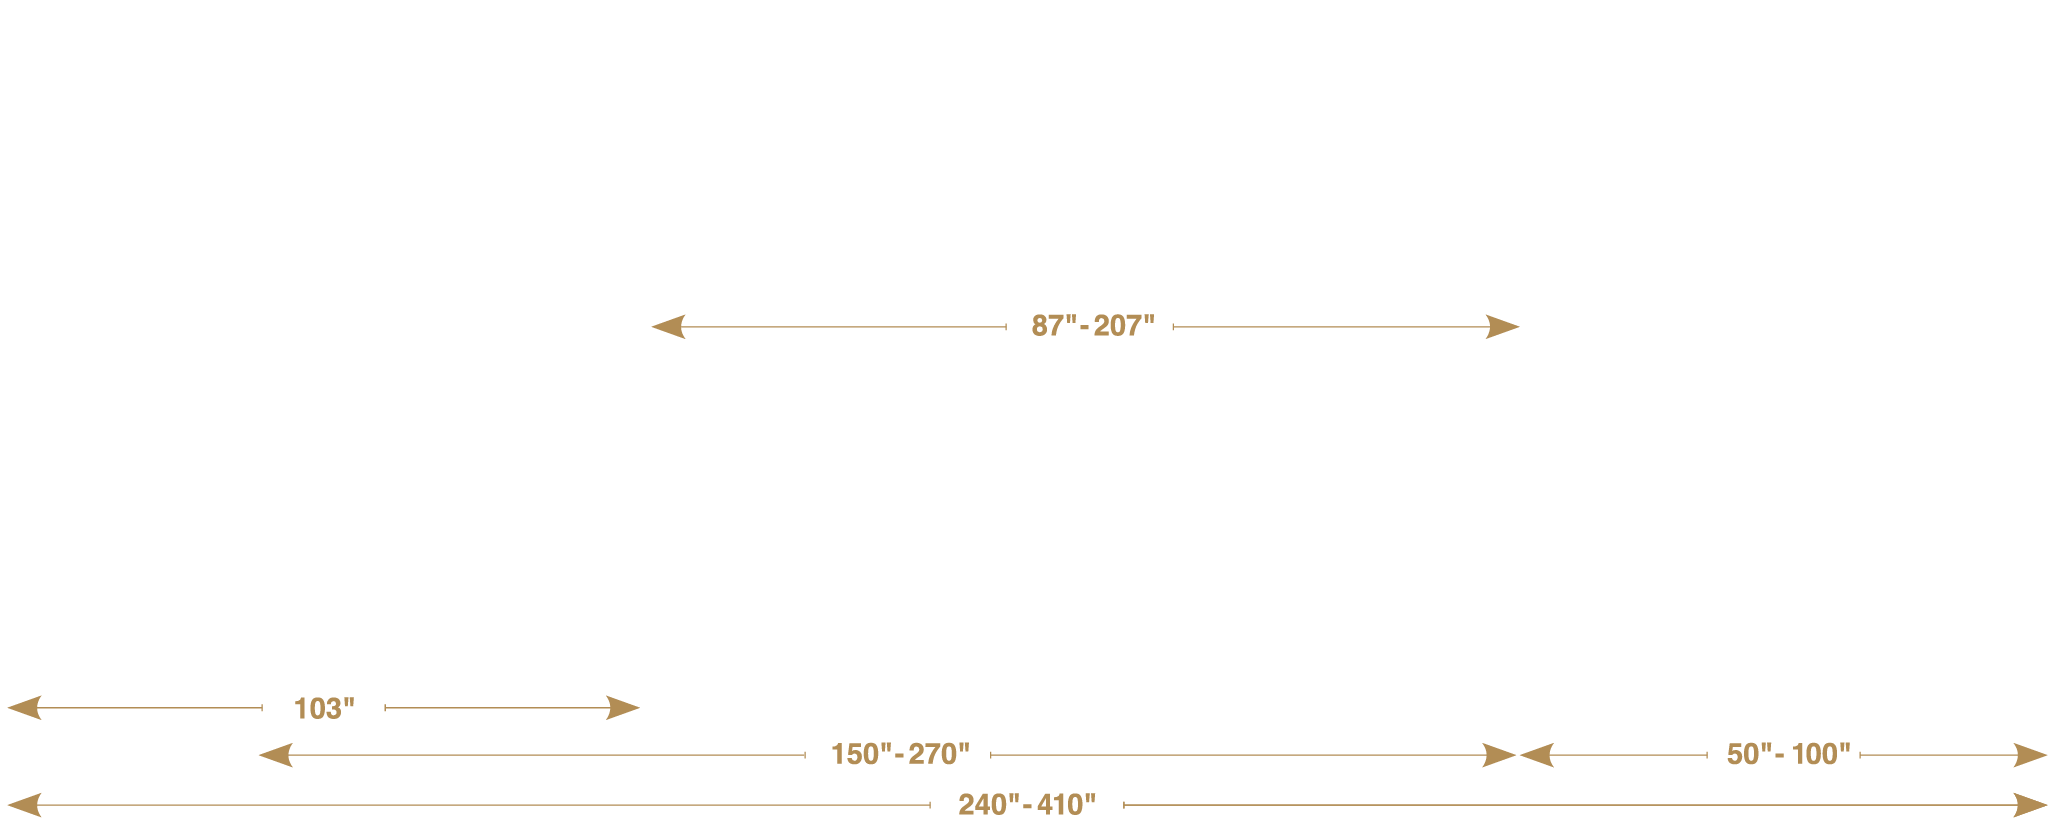 Side view of an illustrated Mack MD Series truck showing its range of lengths.